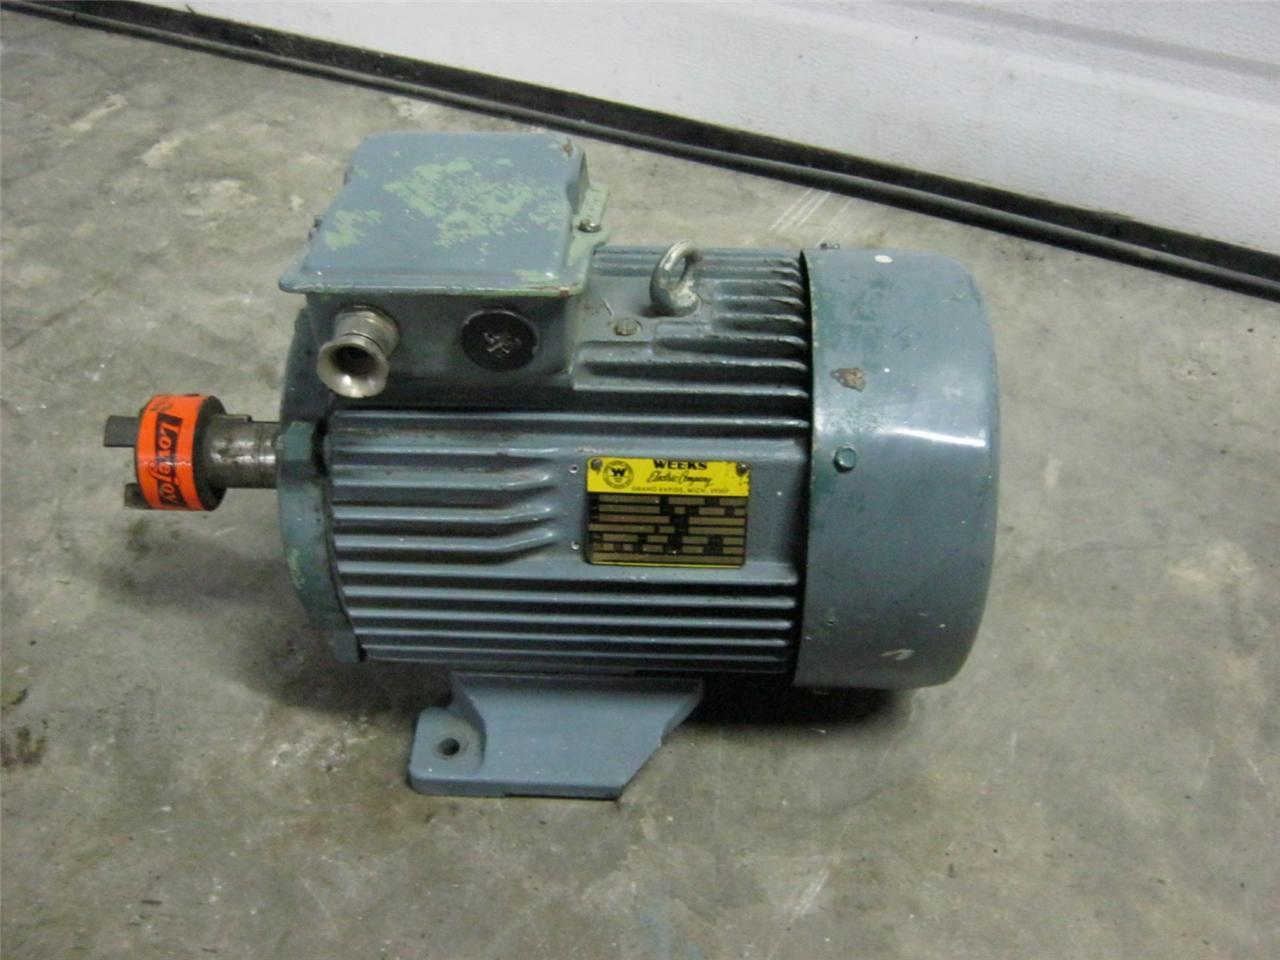 Weeks Electric Company 5 5 HP 3410 RPM 3 Phase Electric Motor | Daves  Industrial Surplus LLC